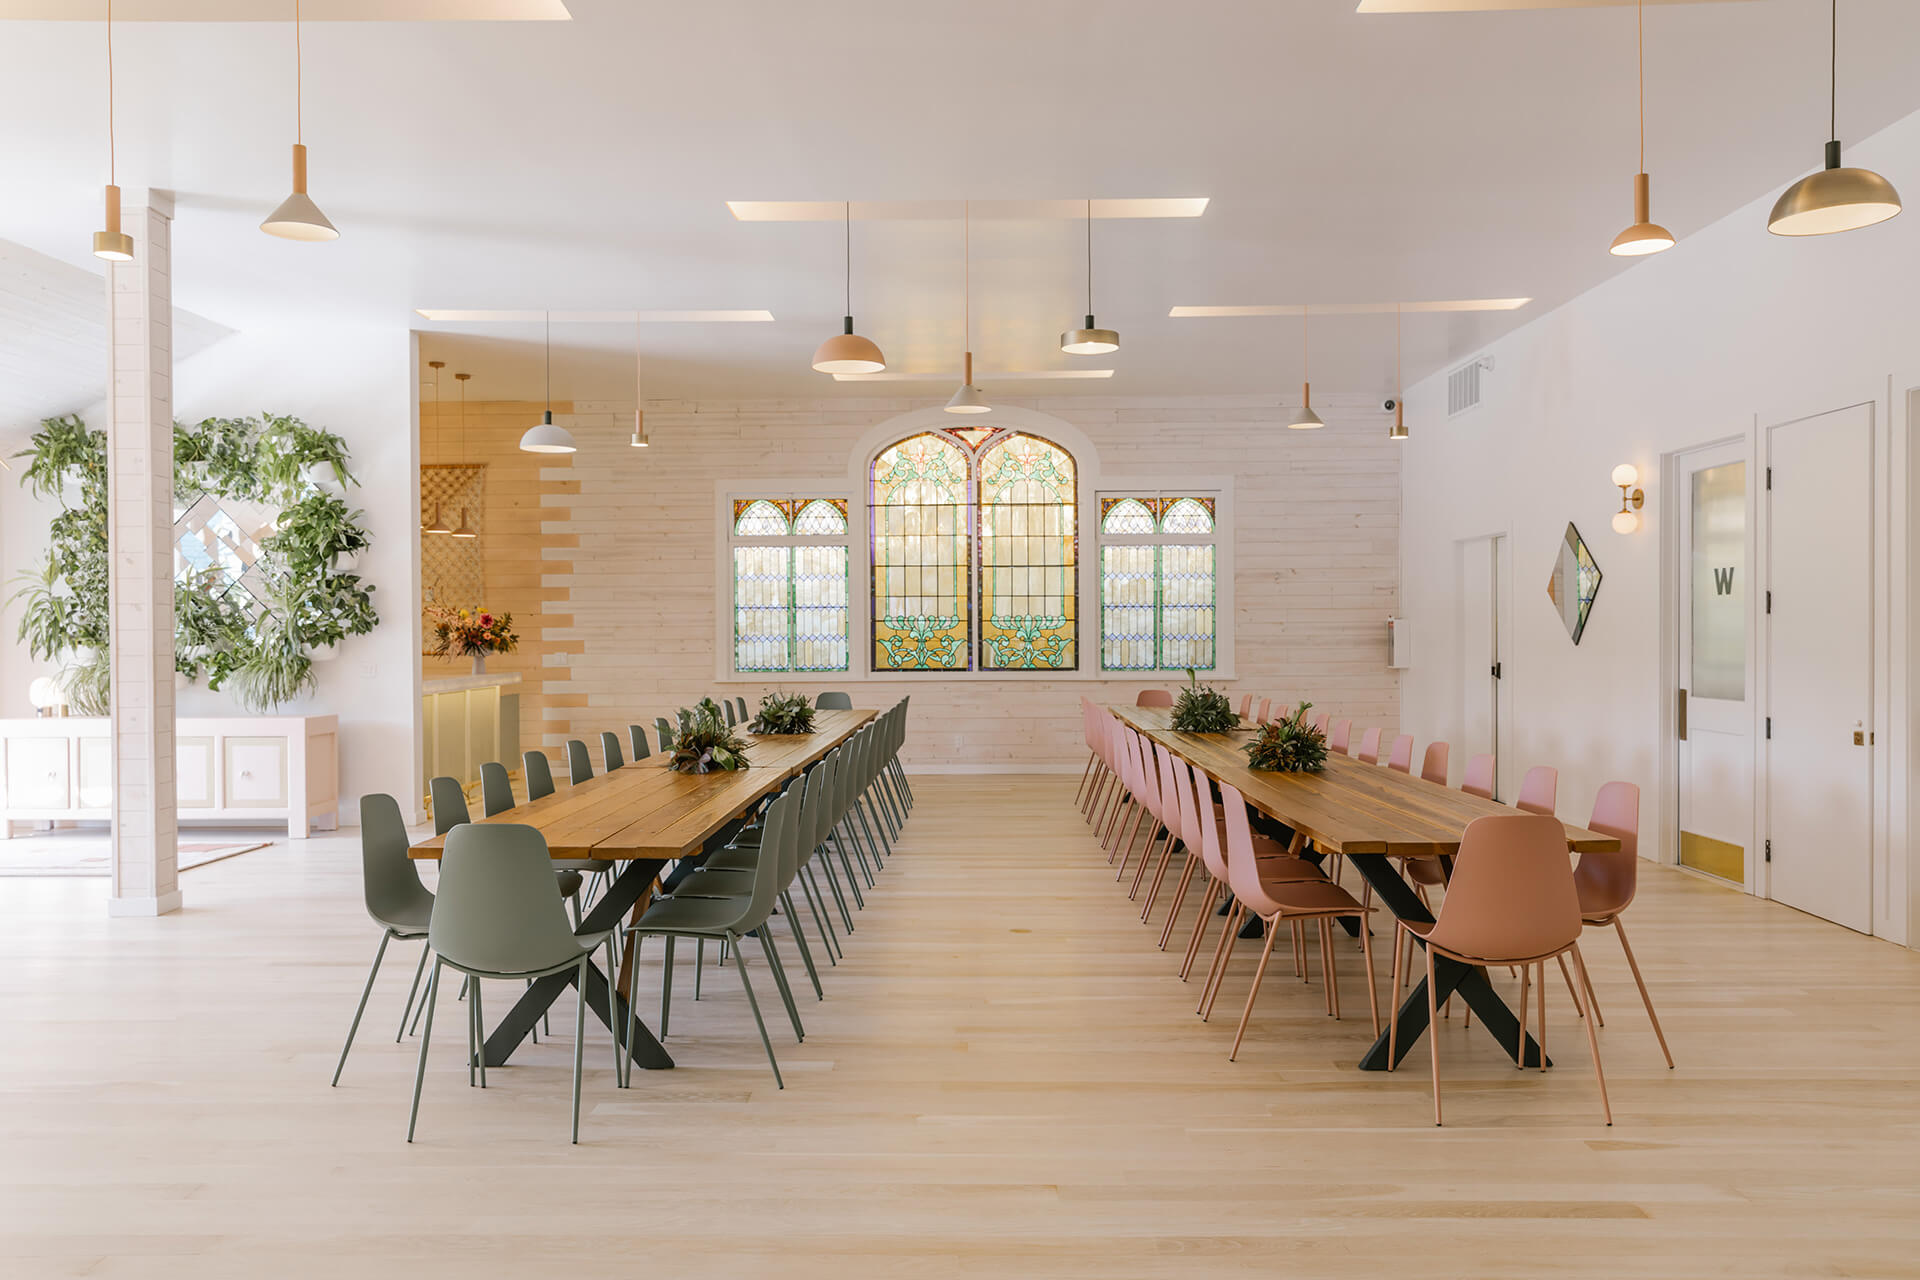 The Reception Hall sees long, wooden tables accompanied by chairs | The Ruby Street in LA is a coworking space by Working Holiday Studio and Francesca De La Fuente | STIRworld